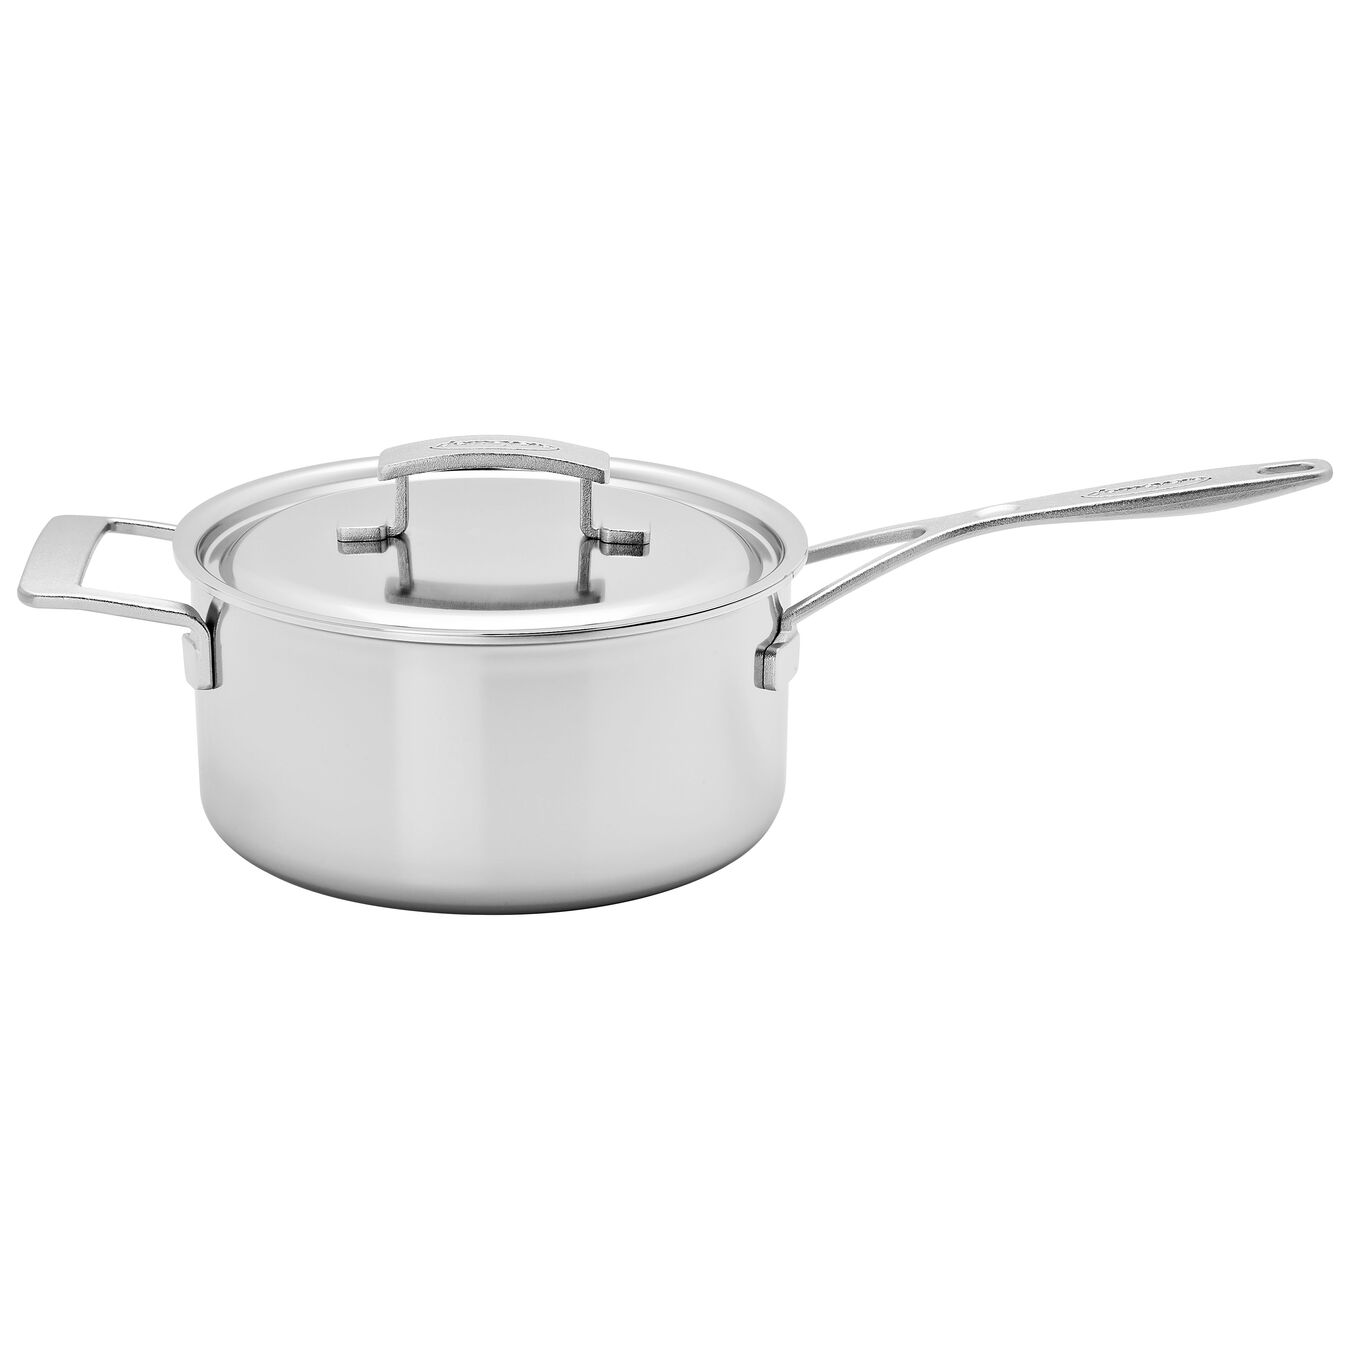 4 L 18/10 STAINLESS STEEL ROUND SAUCE PAN WITH LID,,large 2